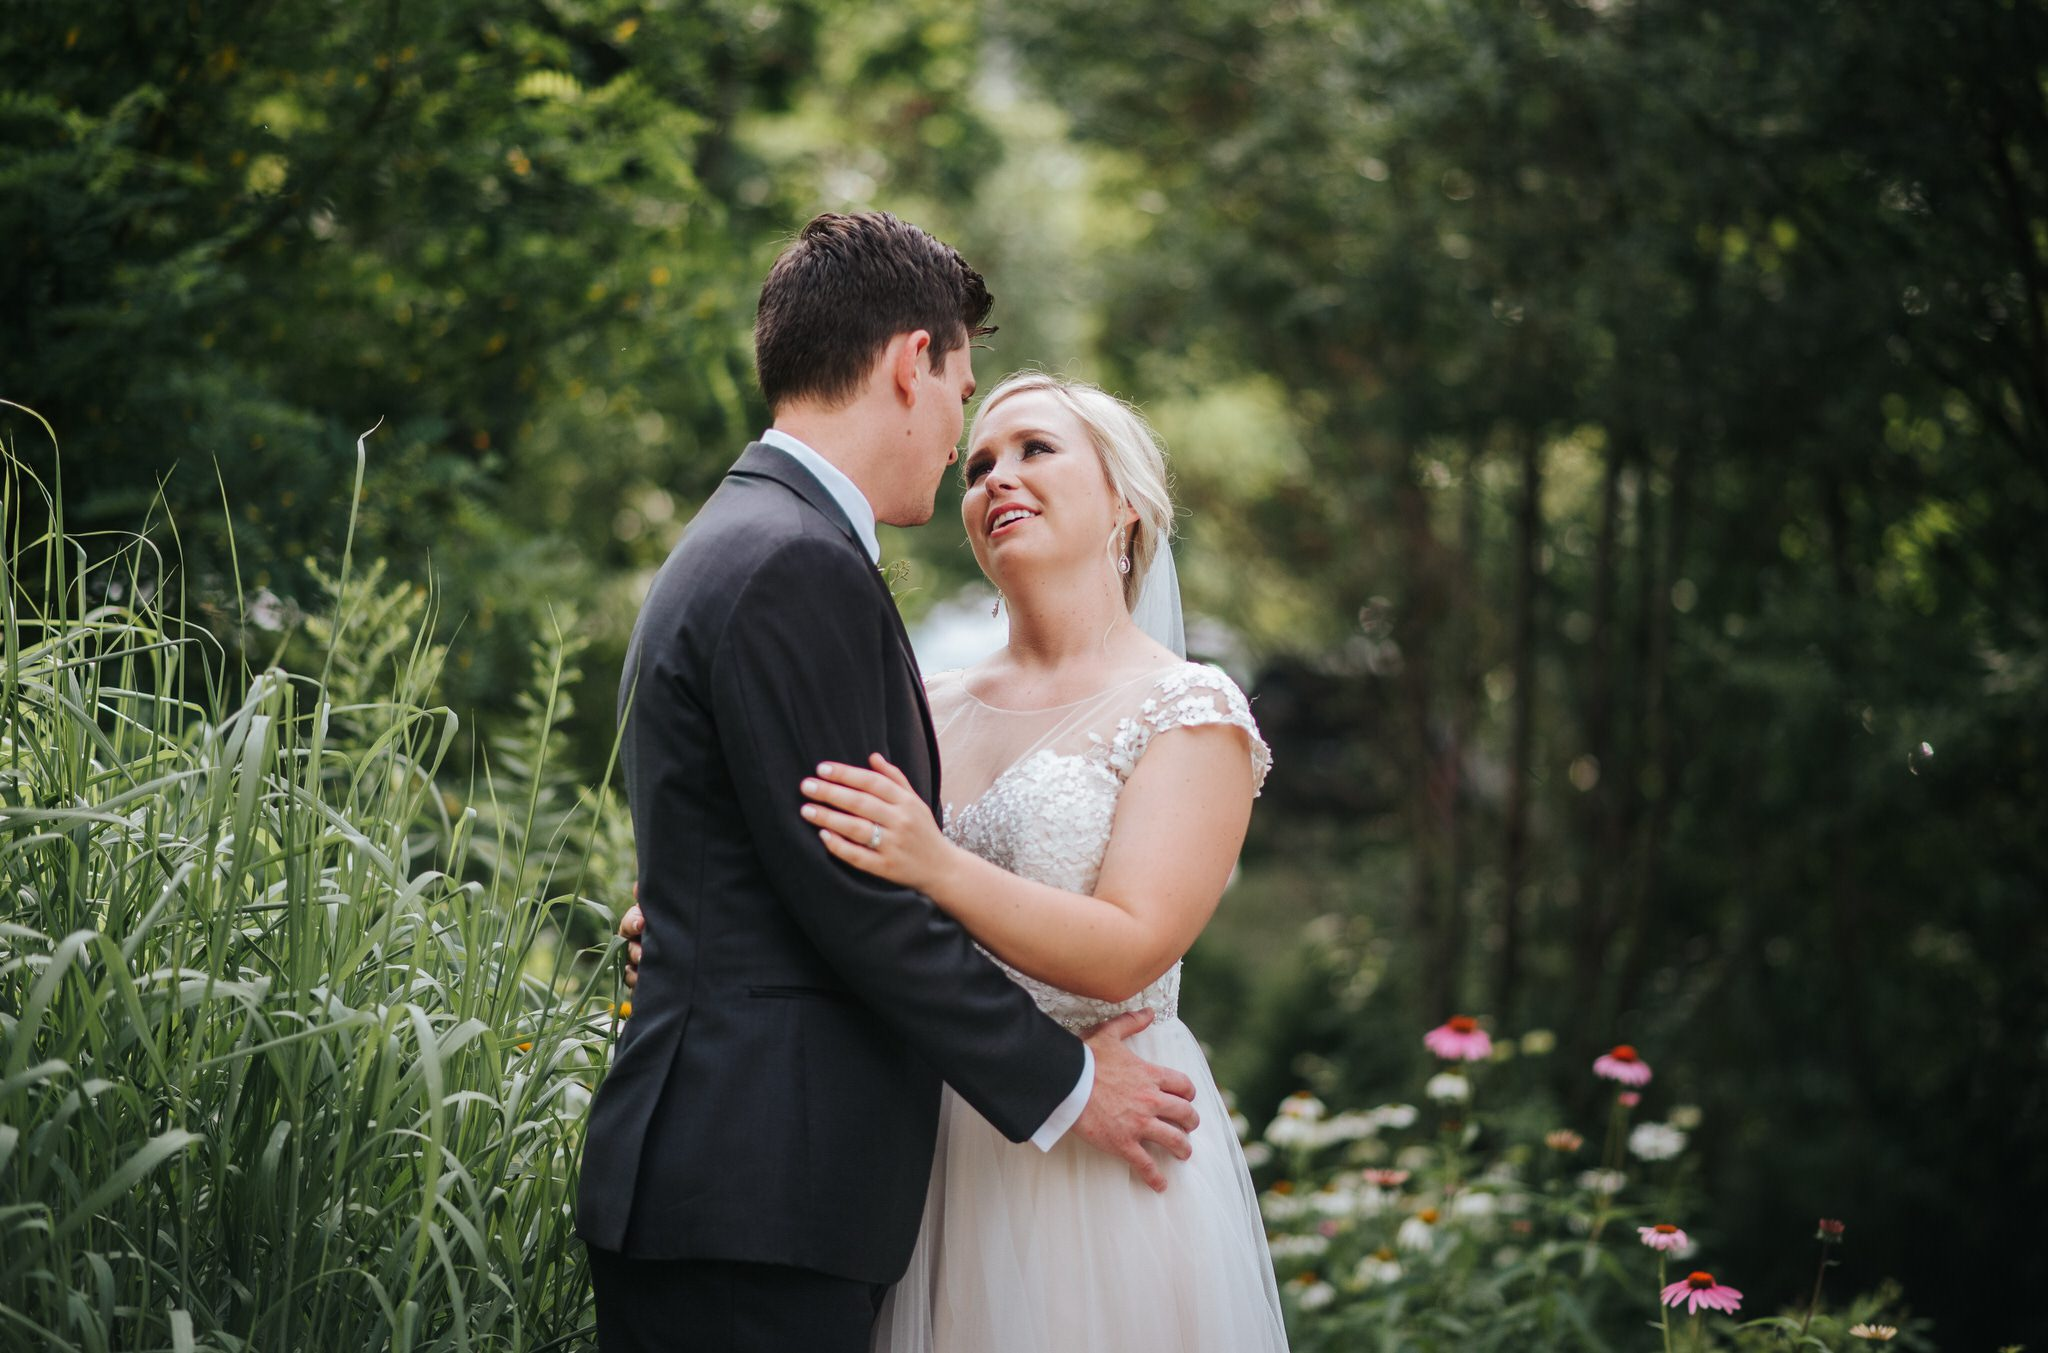 Ancaster Mill Wedding - portraits in the forest